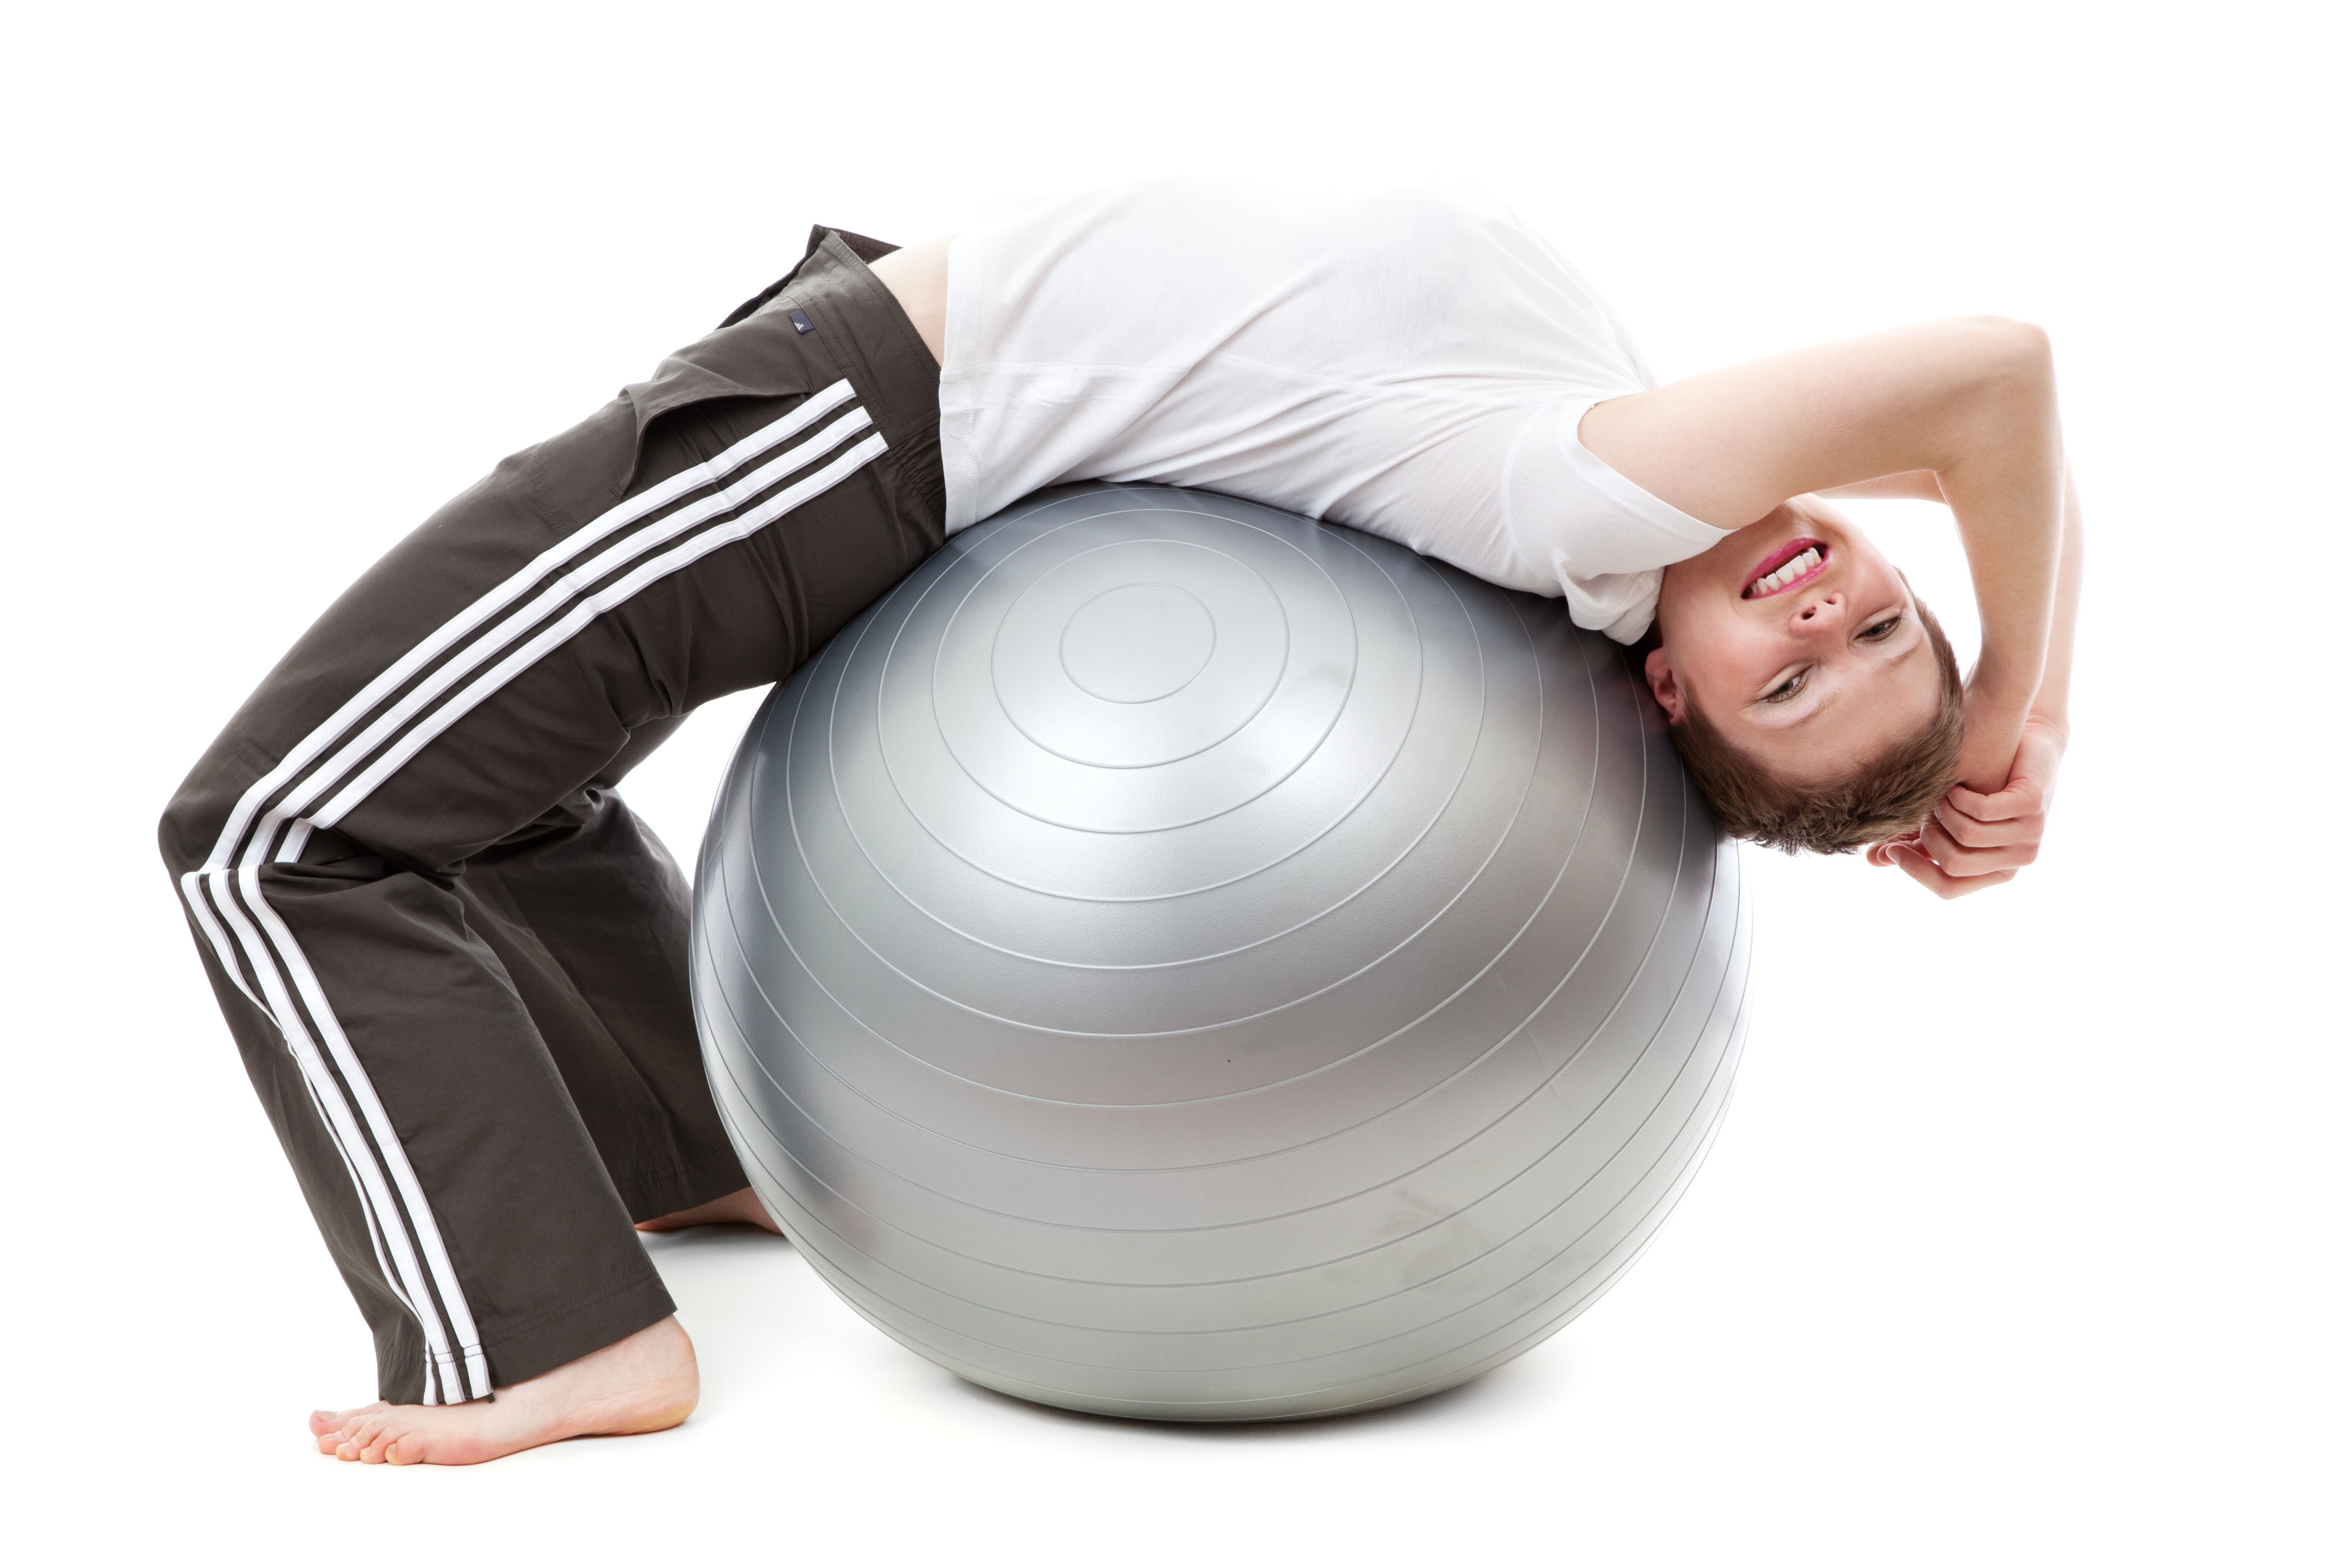 exercising_on_a_gym_ball_198632